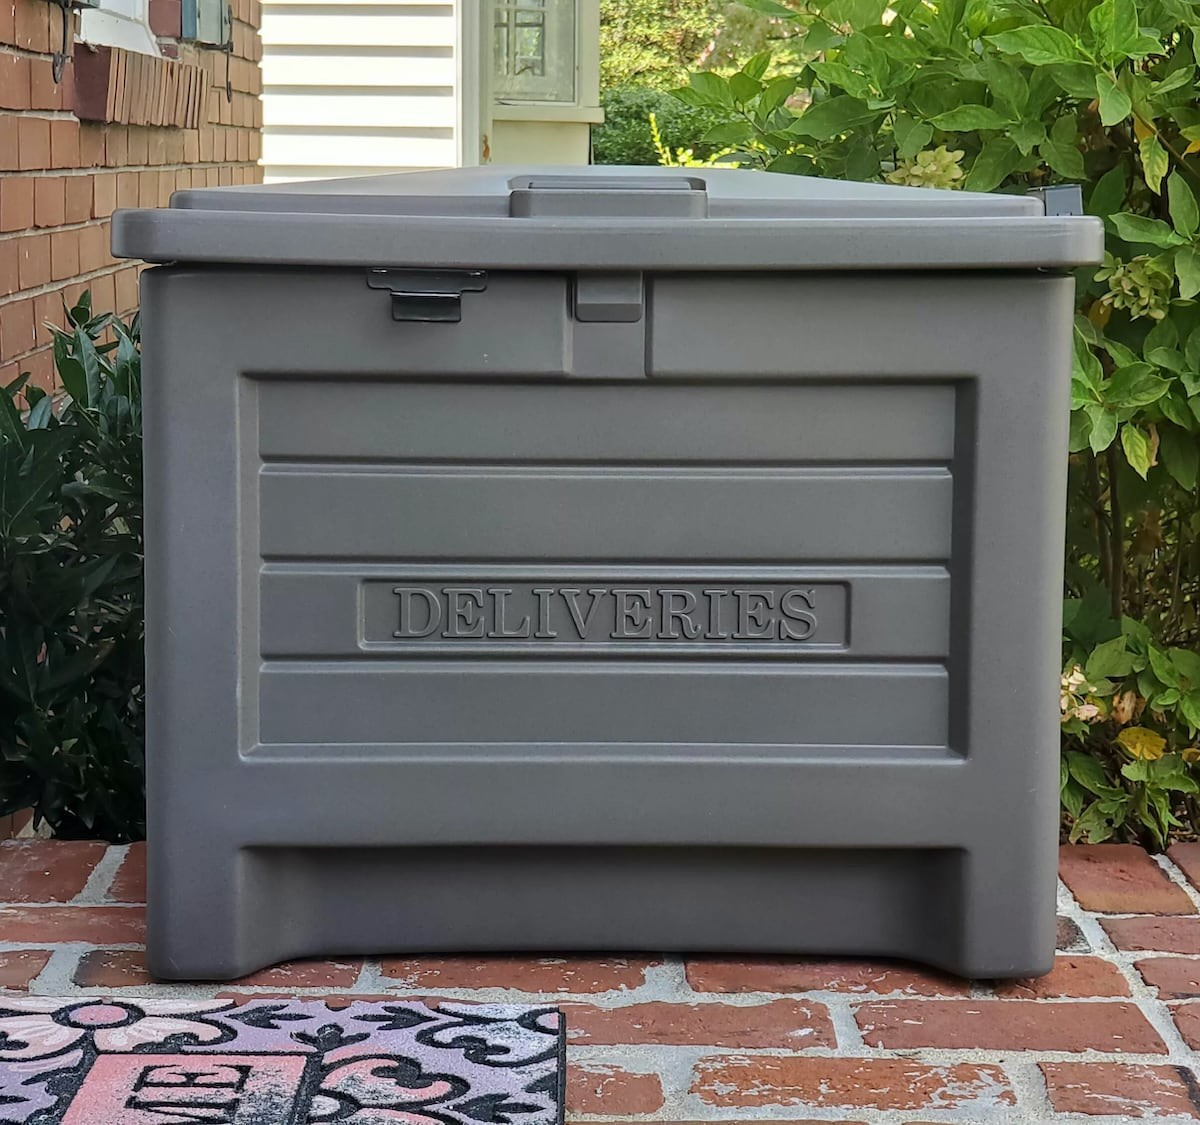 Yale Smart Delivery Box package safe allows you to receive perishable items